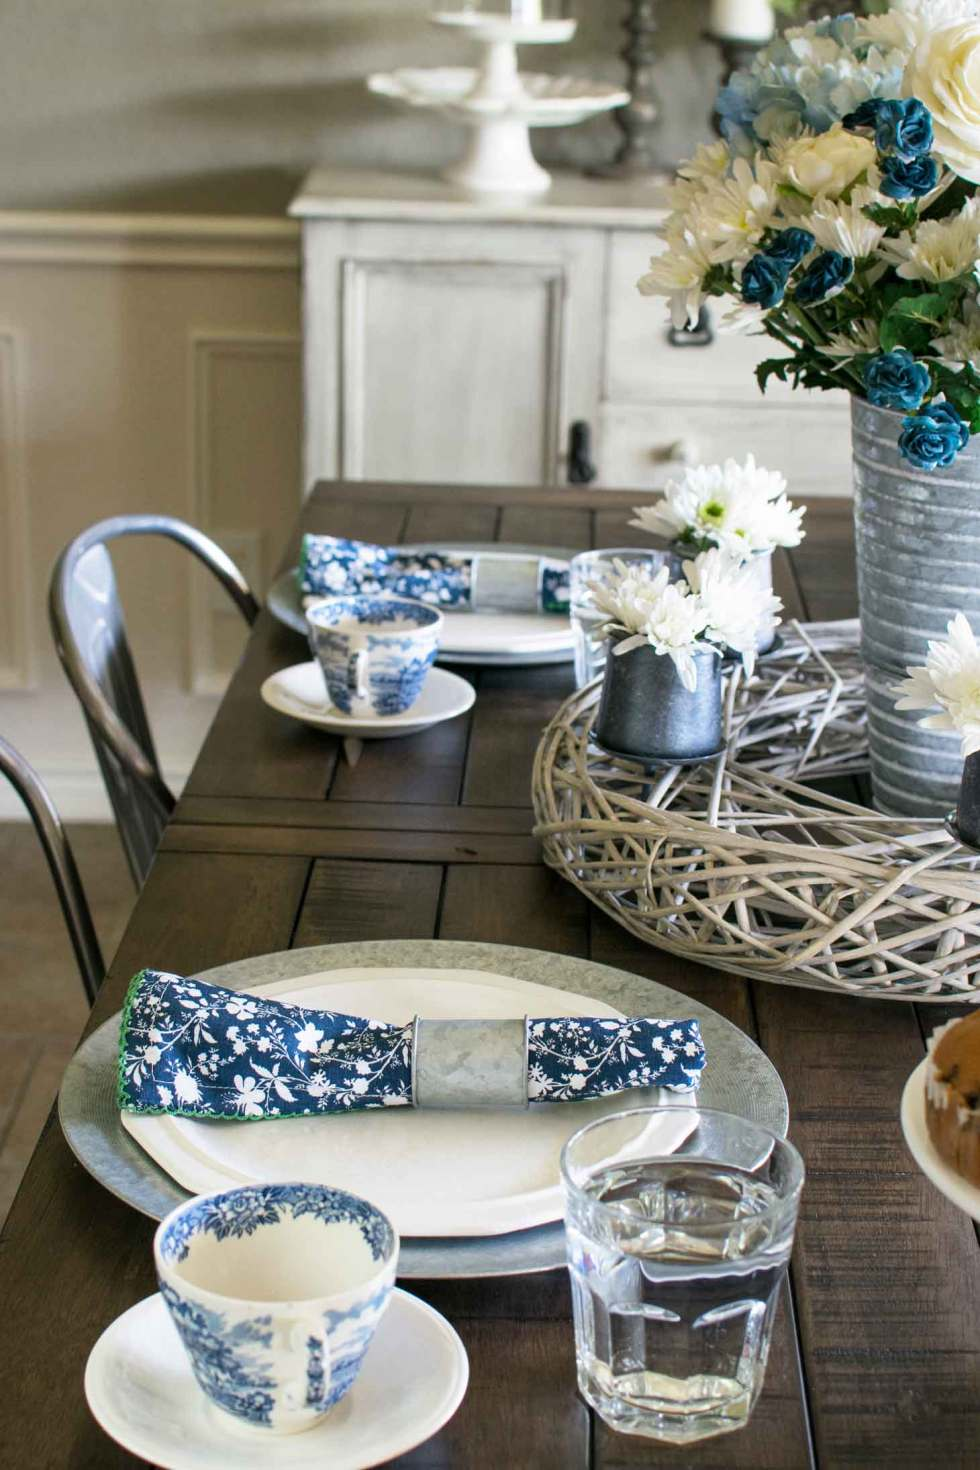 blue and white antique pottery makes a pretty spring table setting